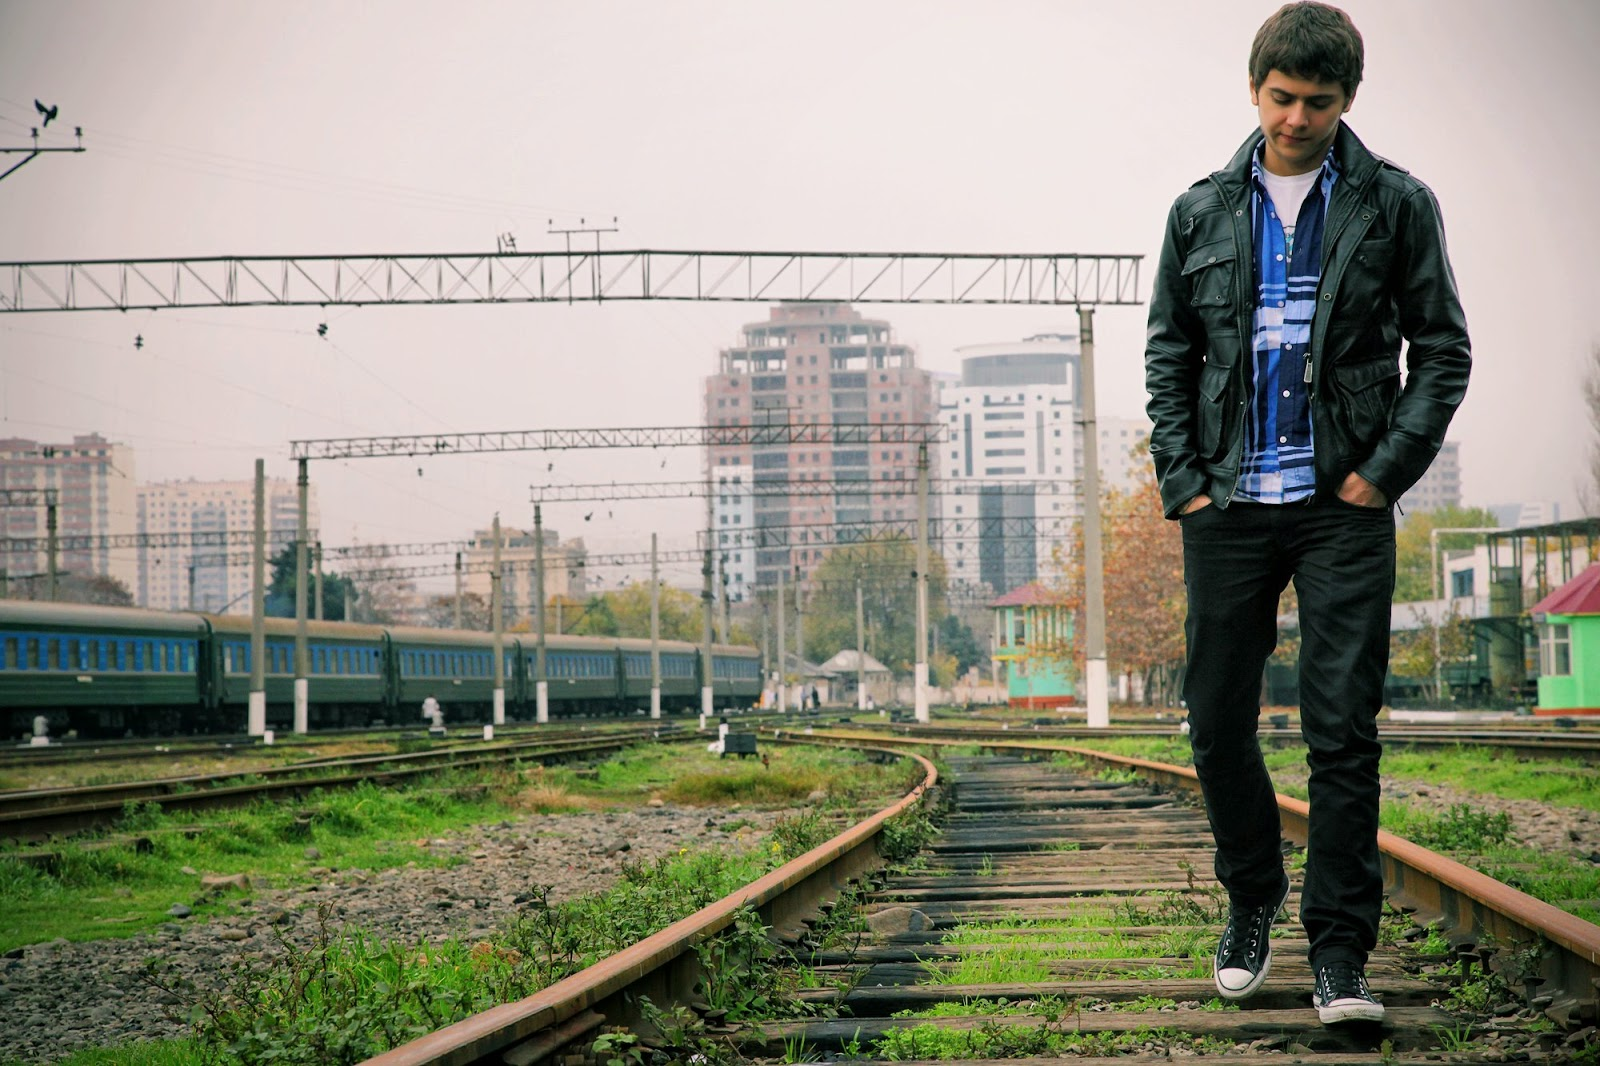 boy in love walking in railway track